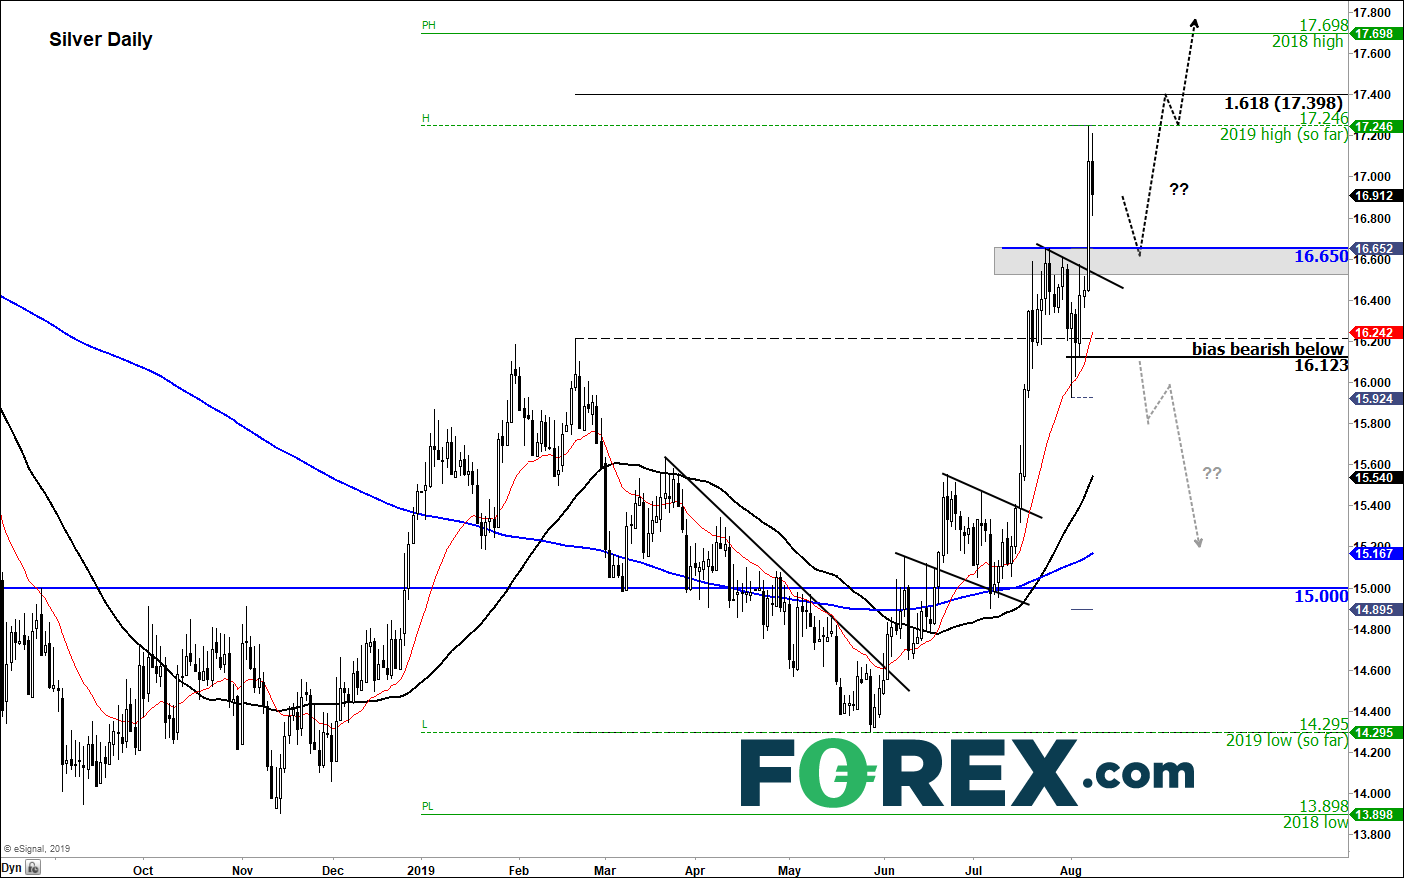 Is Forex Trading Legal In Belgium